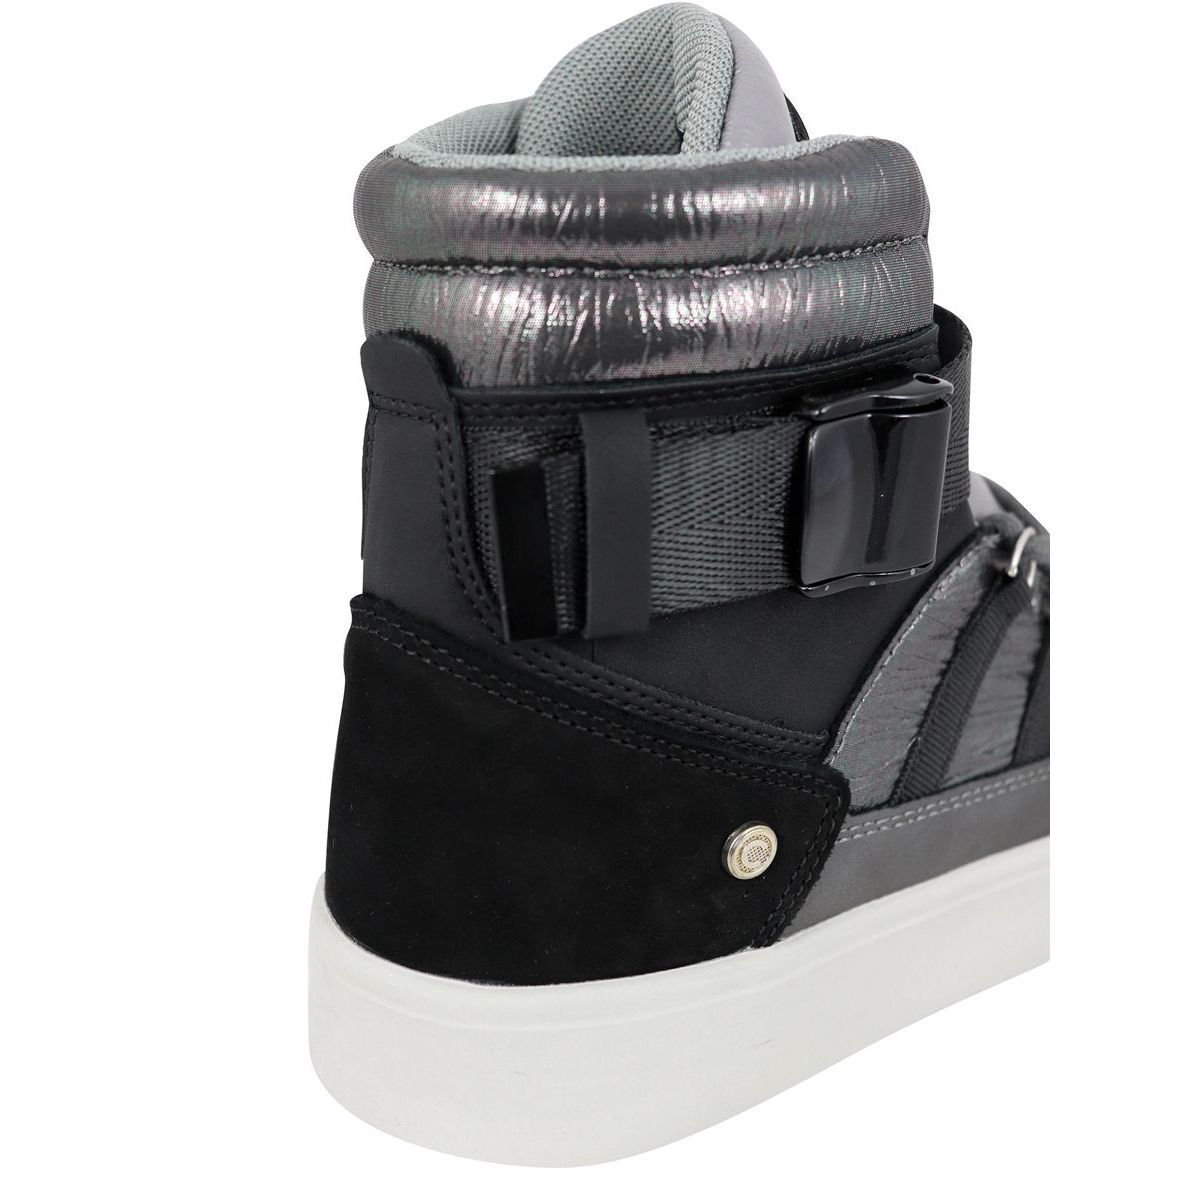 EVIE ELEMENT high sneakers Grey Colmar Shoes